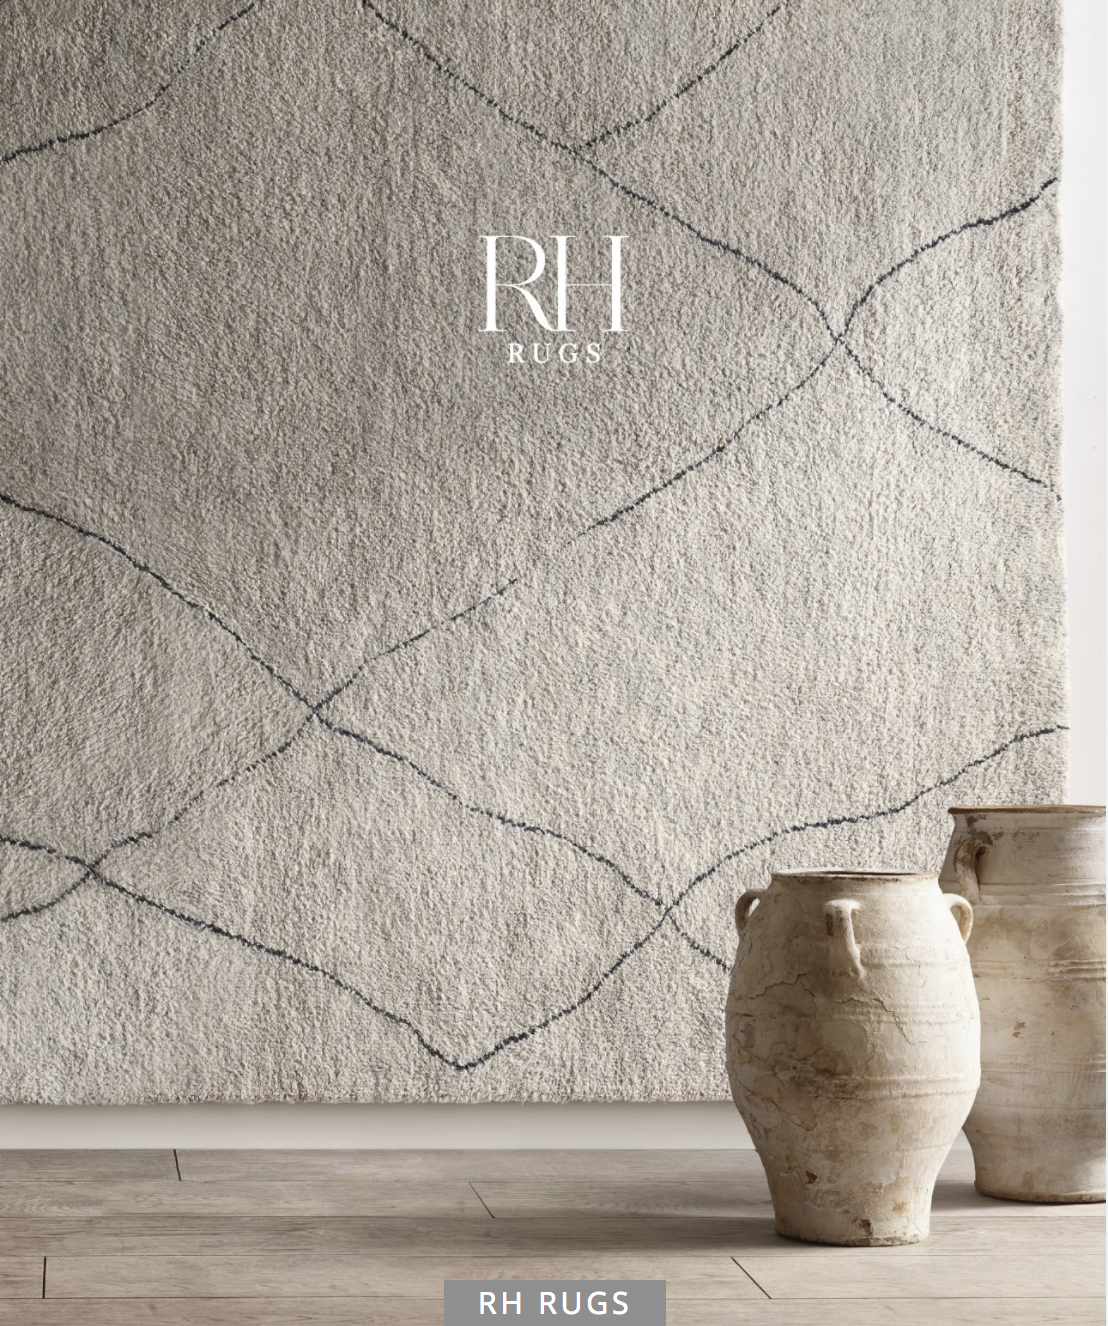 RH_rugs_catalog.png